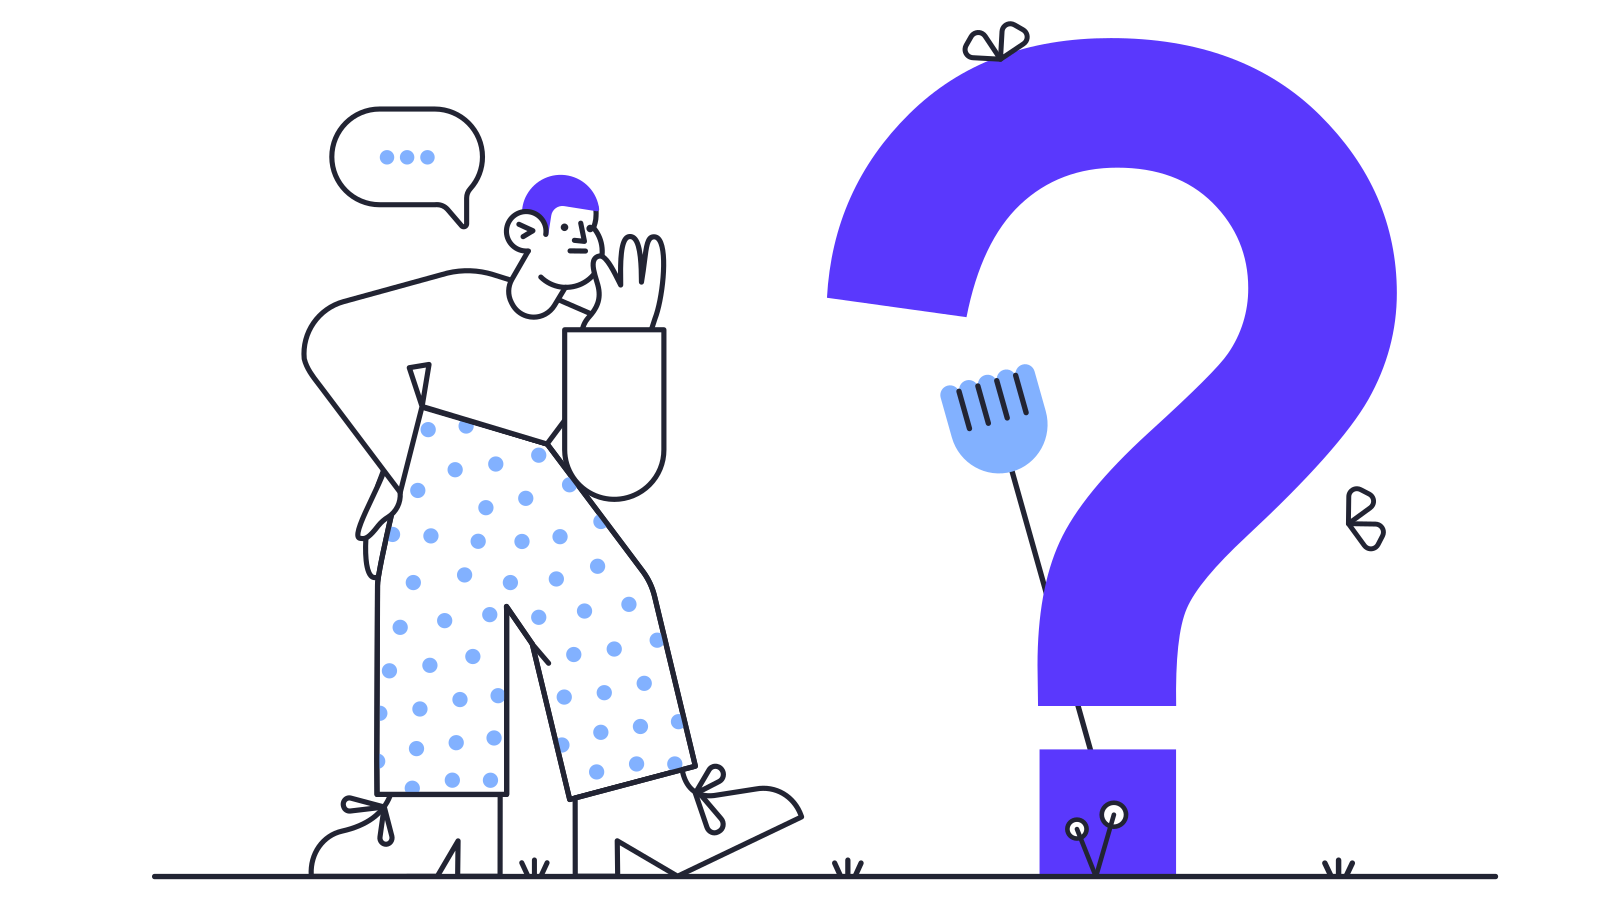 style Question Vector images in PNG and SVG   Icons8 Illustrations